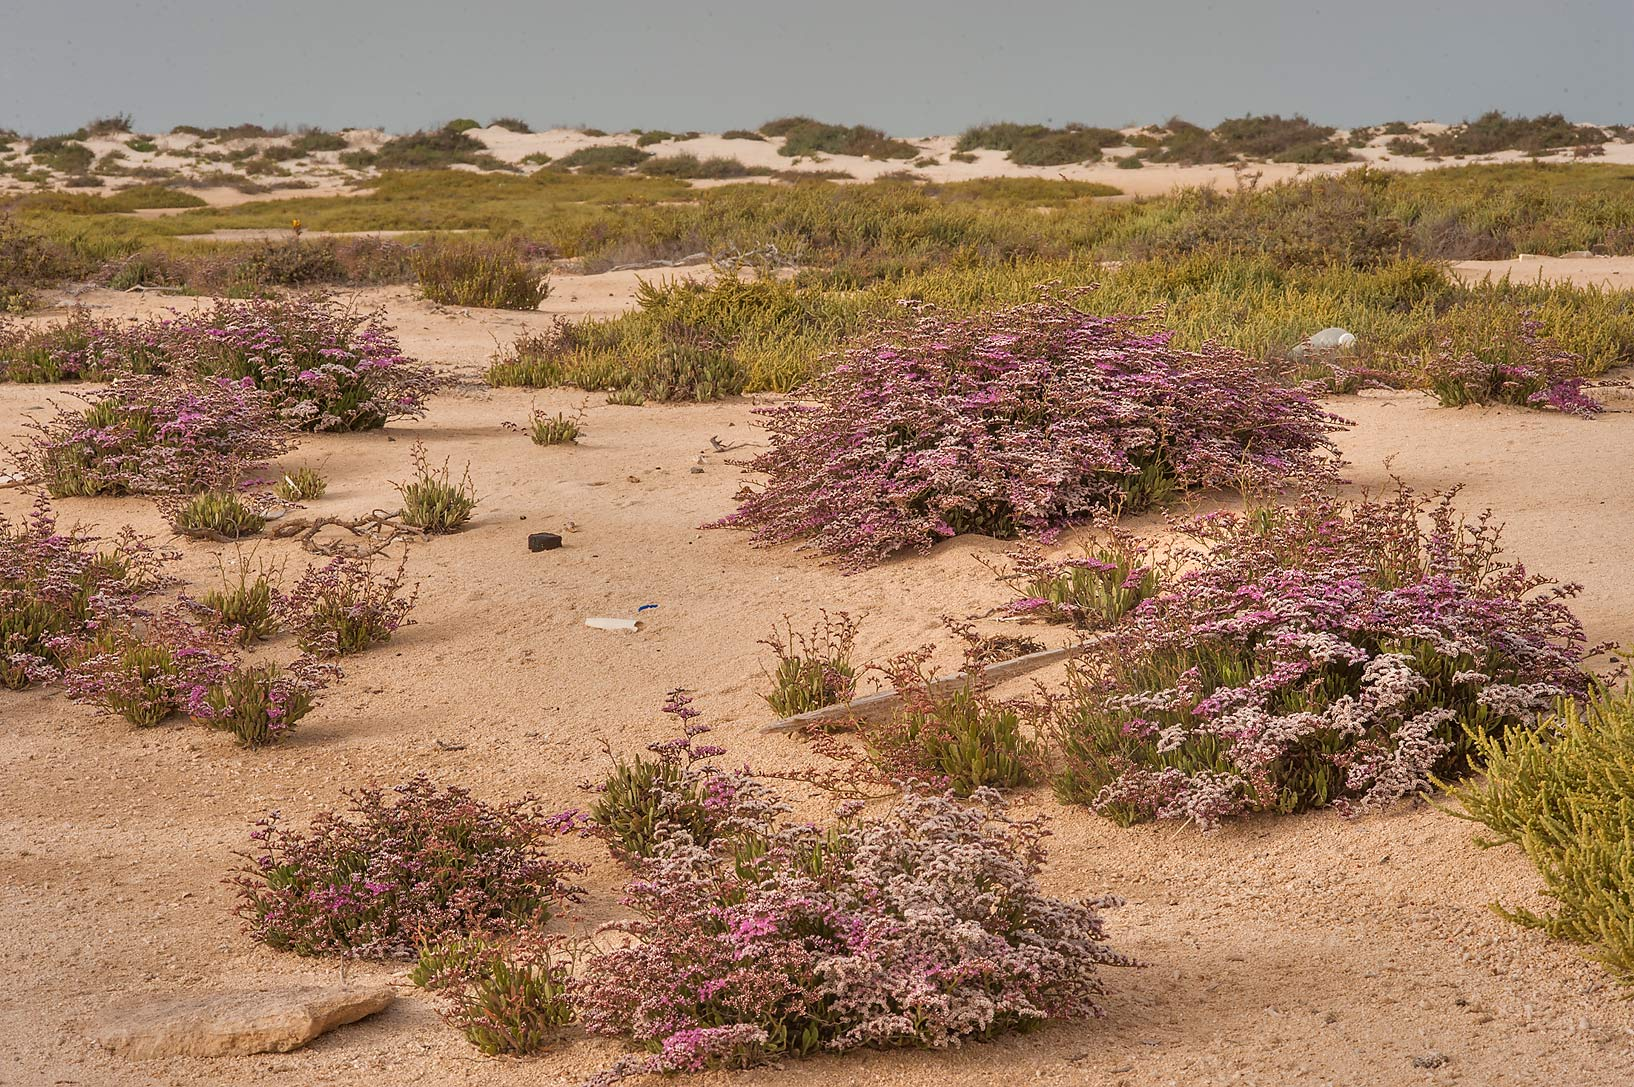 Bushes of Sea lavender (Qetaif, Limonium axillare...in Madinat Al Shamal area. Qatar